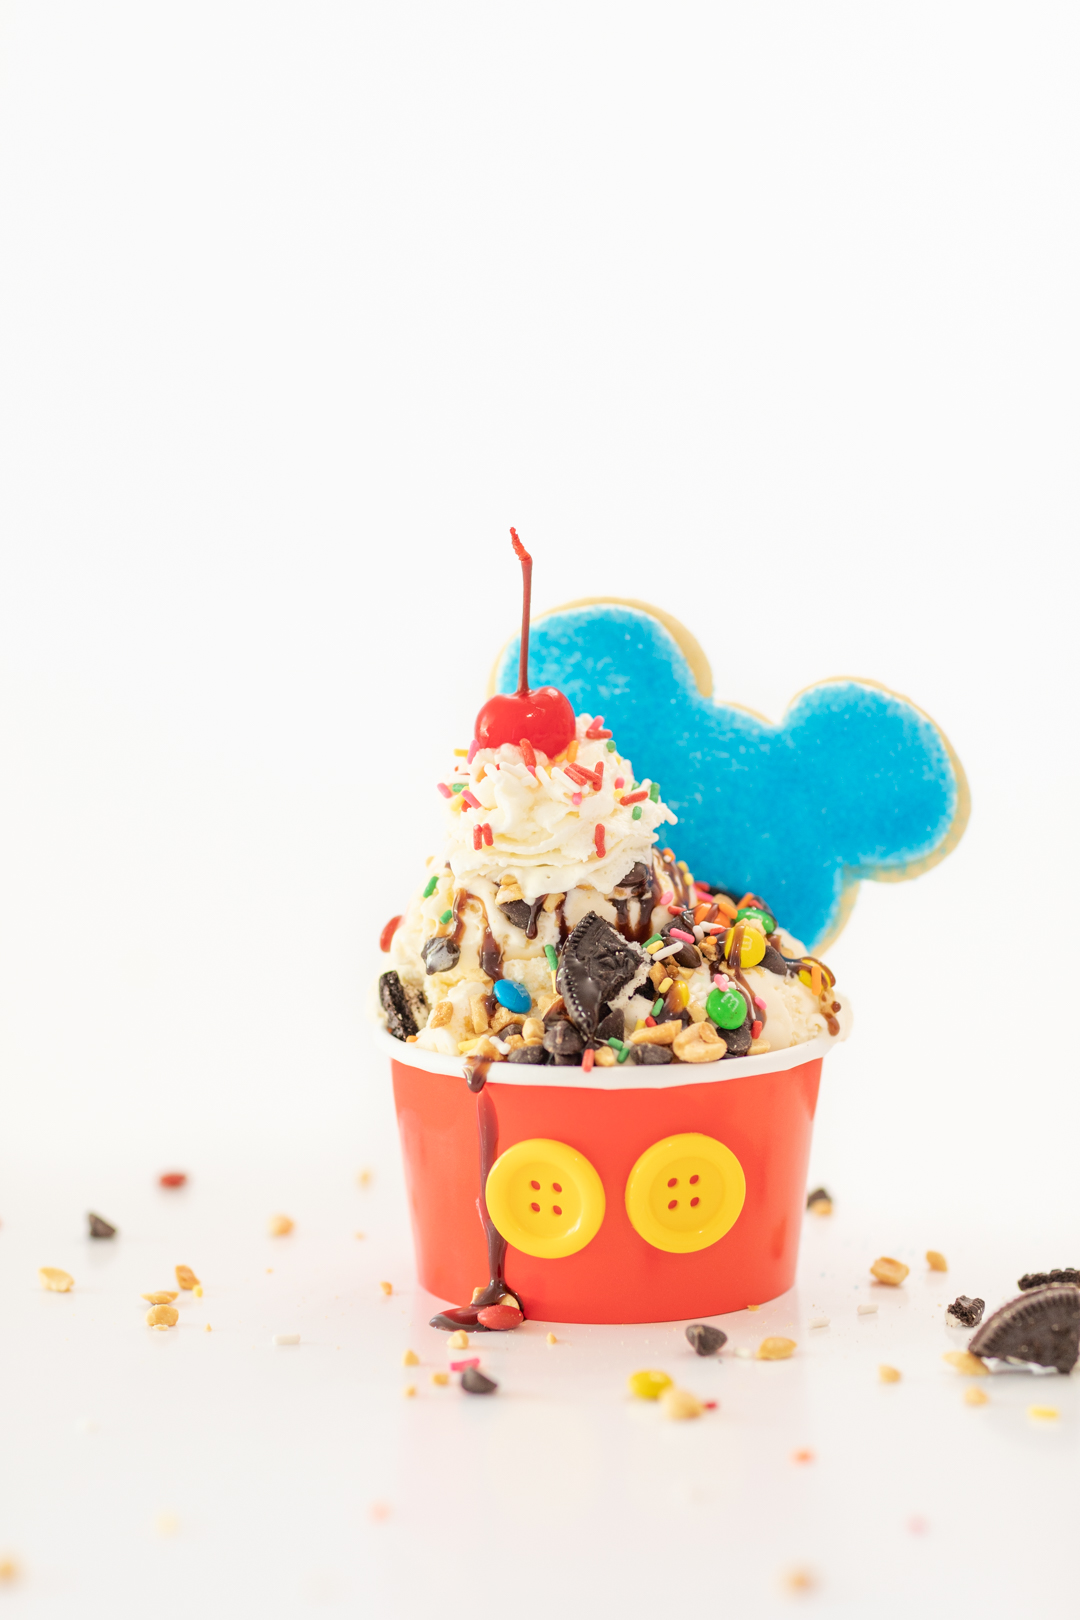 Best Mickey Mouse Sundae You Can Make at Home